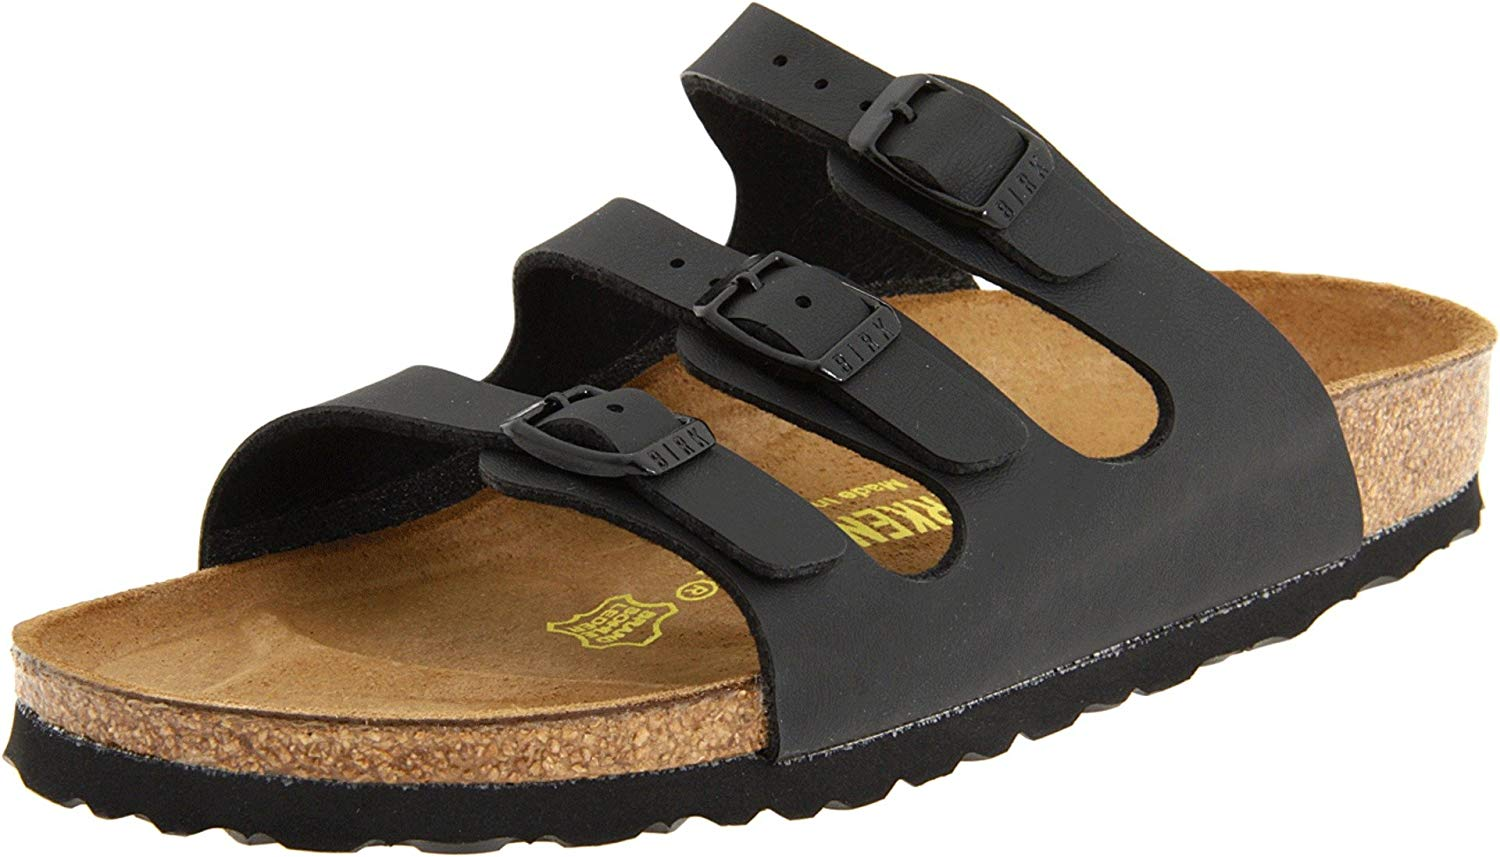 1decd112458 Get Quotations · Birkenstock Women s Florida Soft Footbed Birko-Flor Black  Sandals - 37 N EU   6